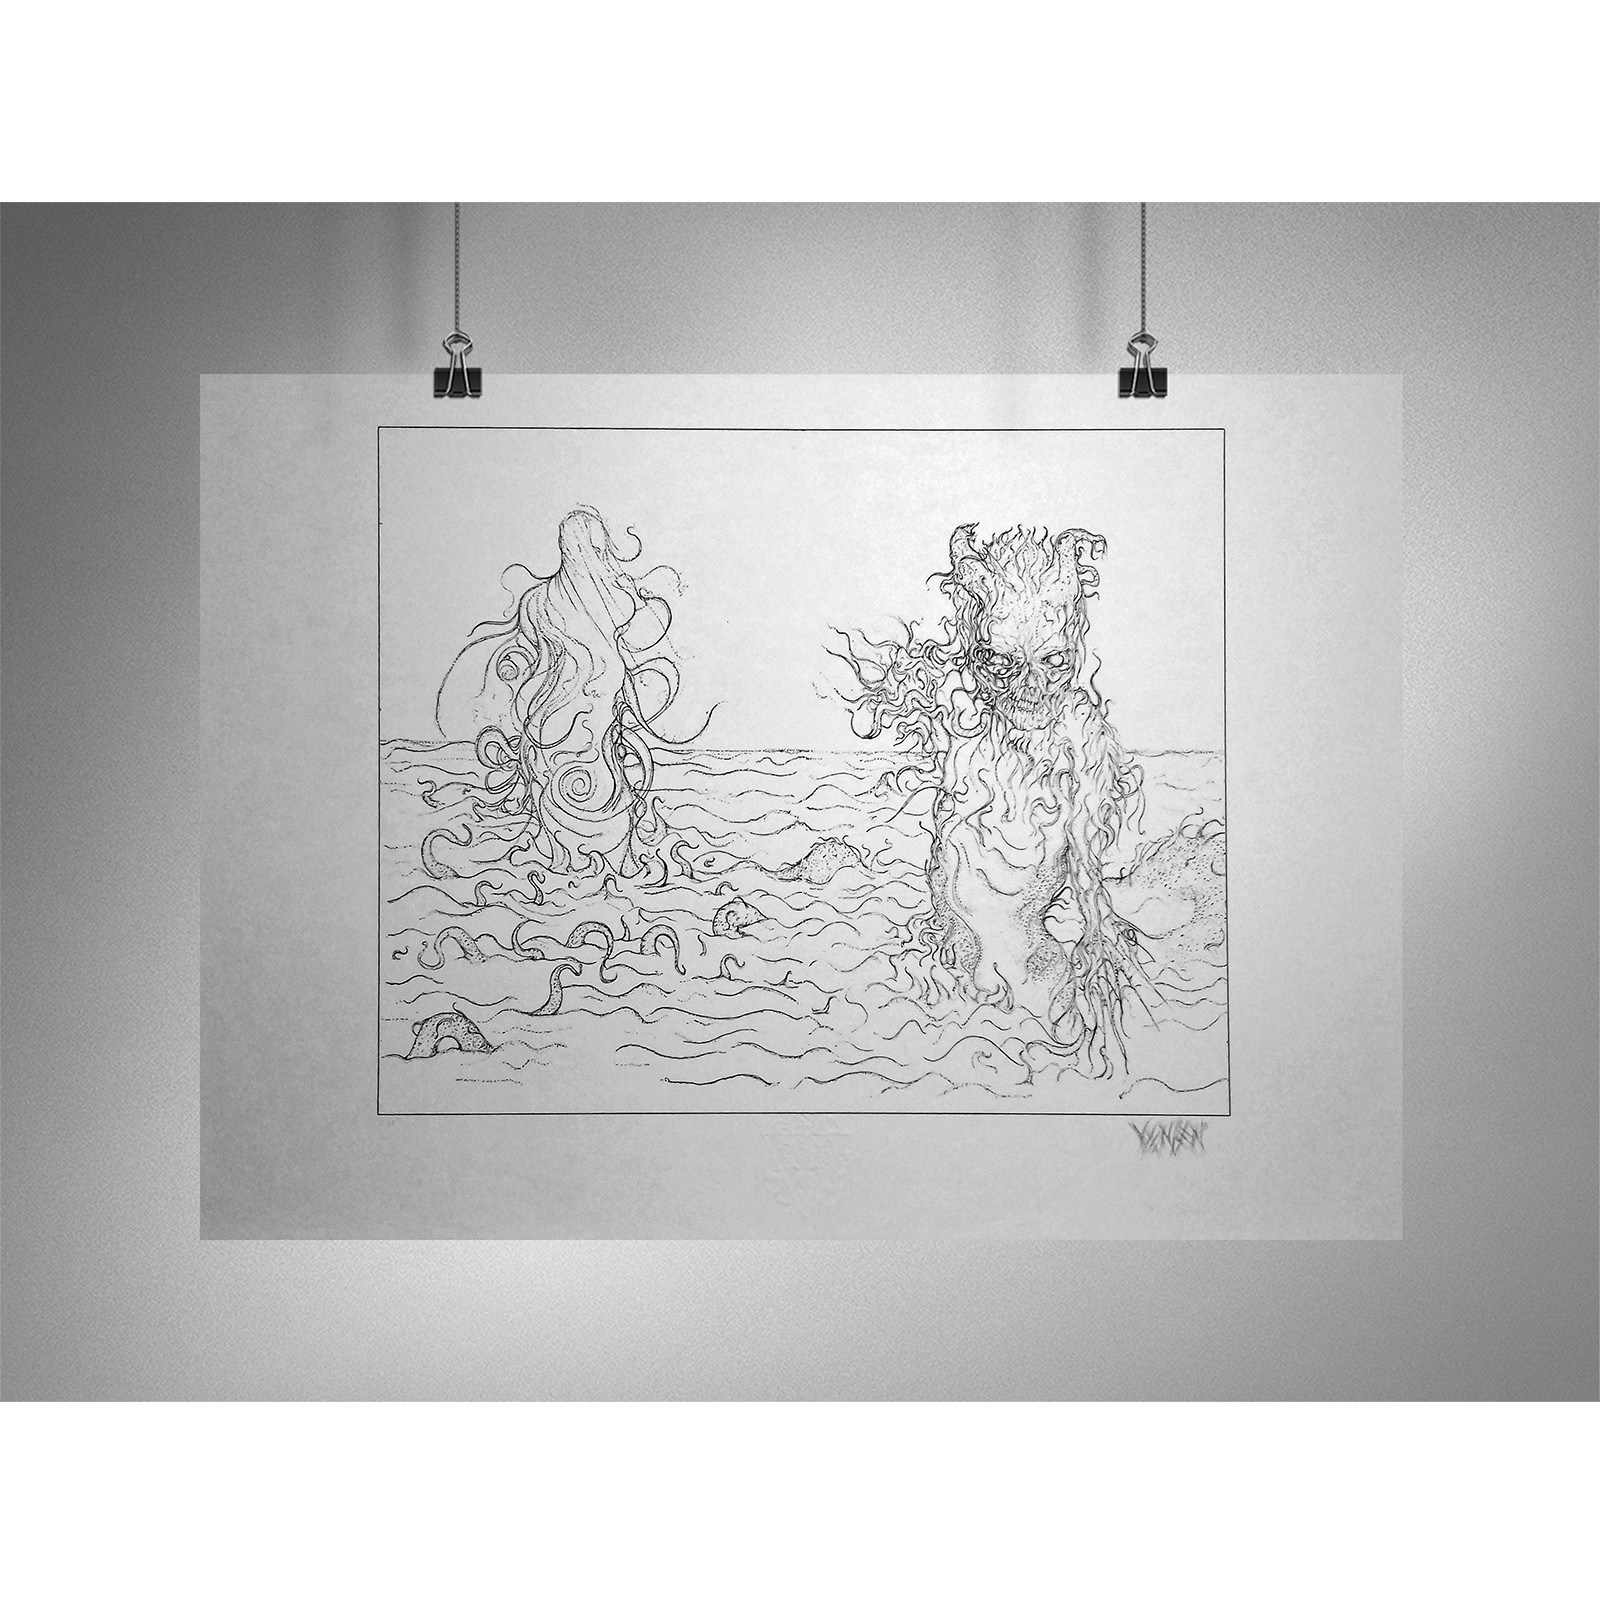 Von children of enki dark gods book one original pencil sketch cvr ver 19x13 giclée print